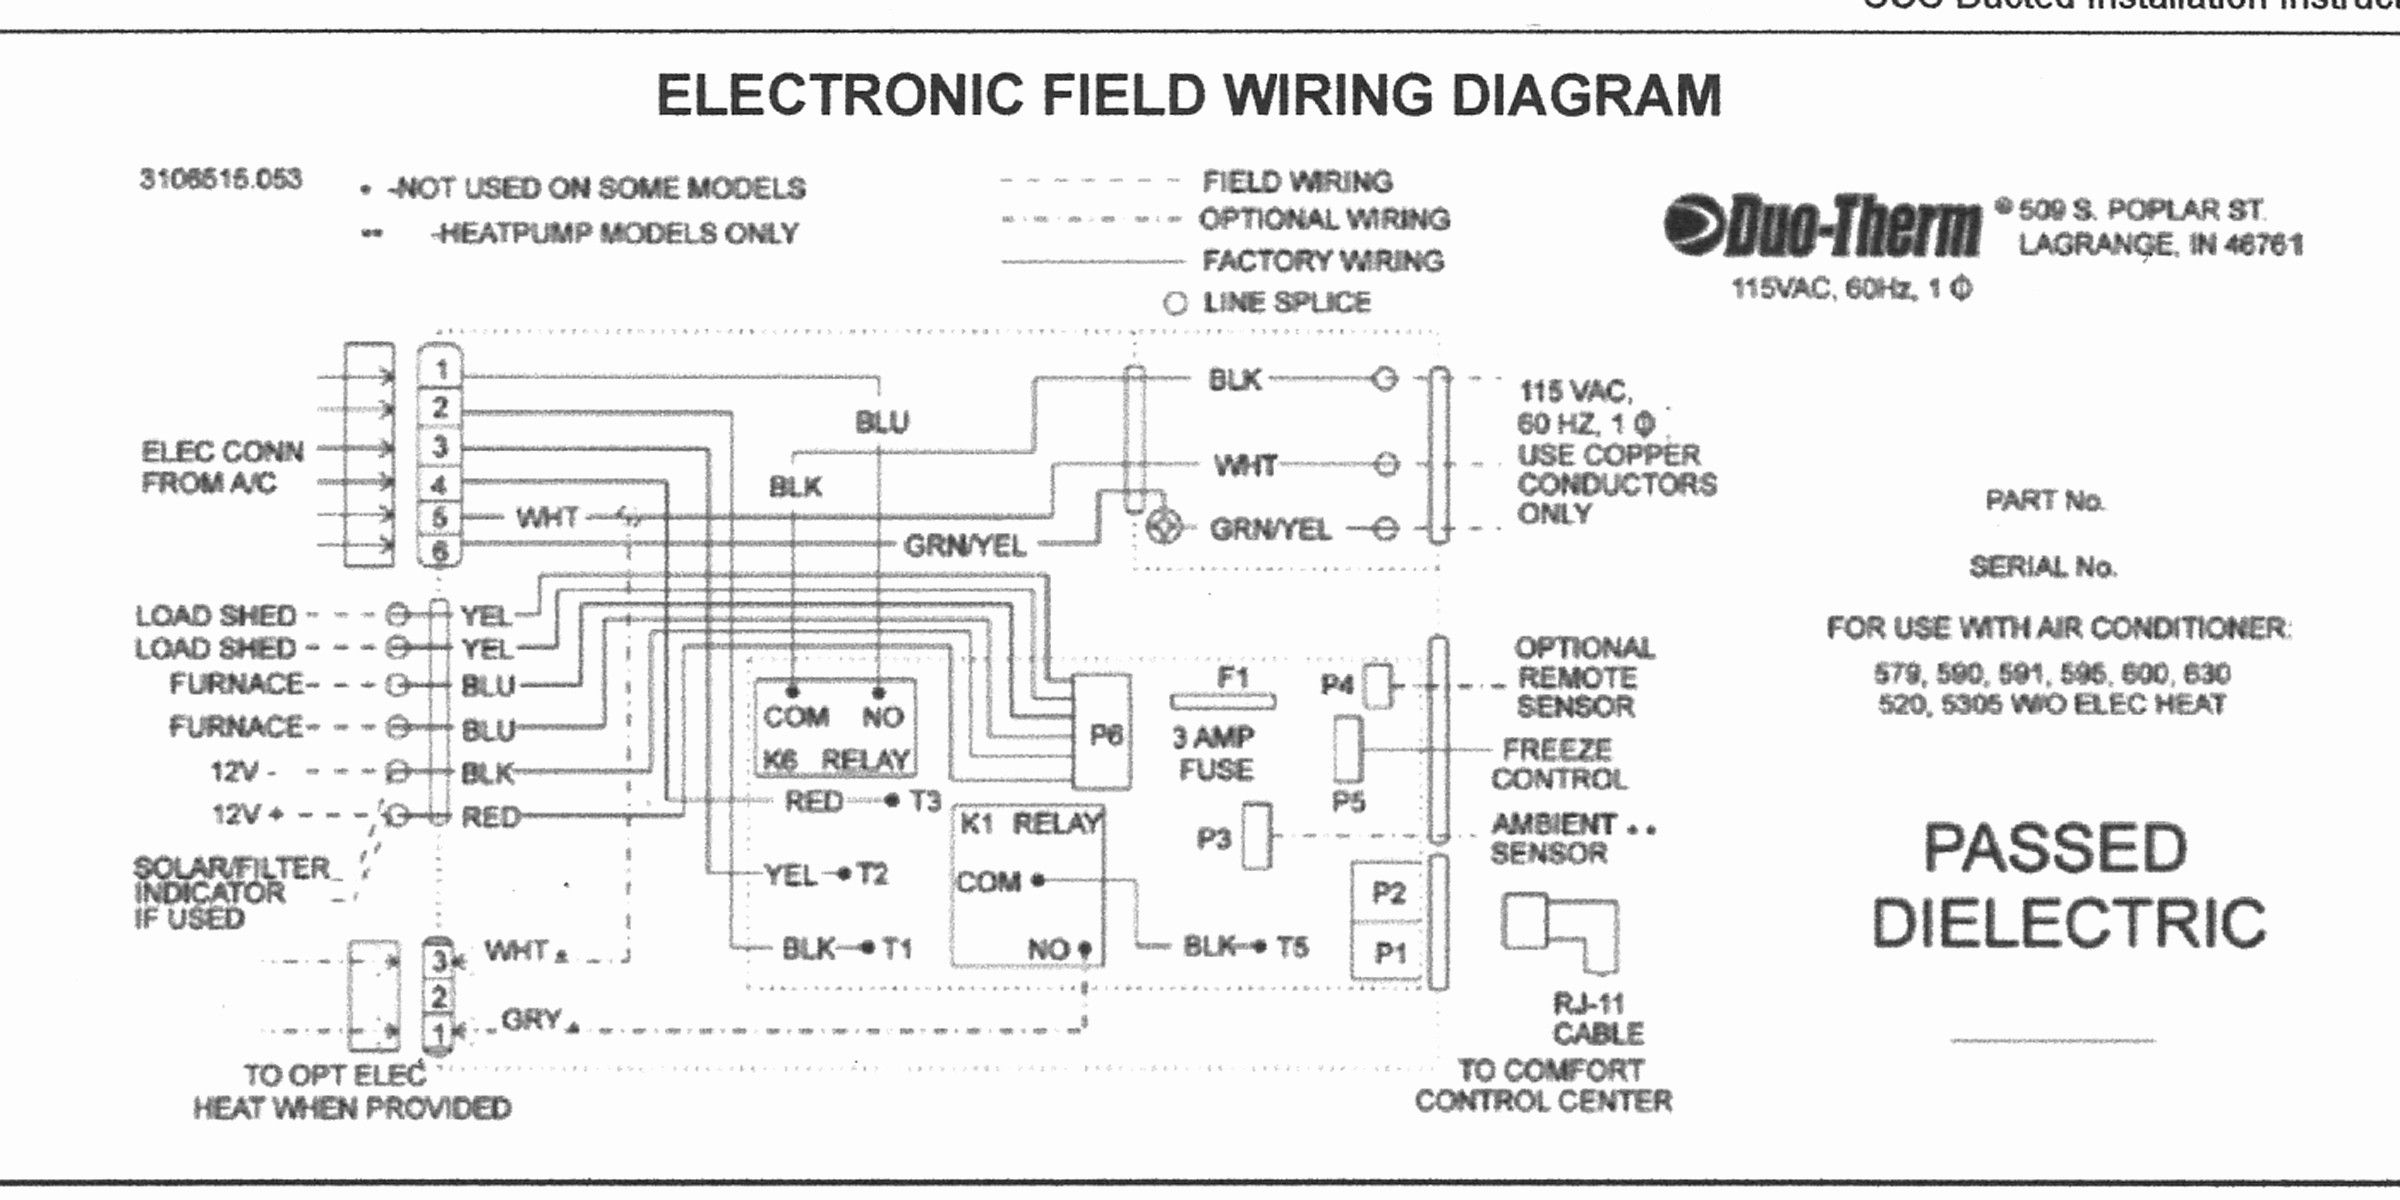 hight resolution of dometic ac wiring diagram wiring diagram toolbox wiring diagram for dometic rv thermostat wiring diagram for dometic